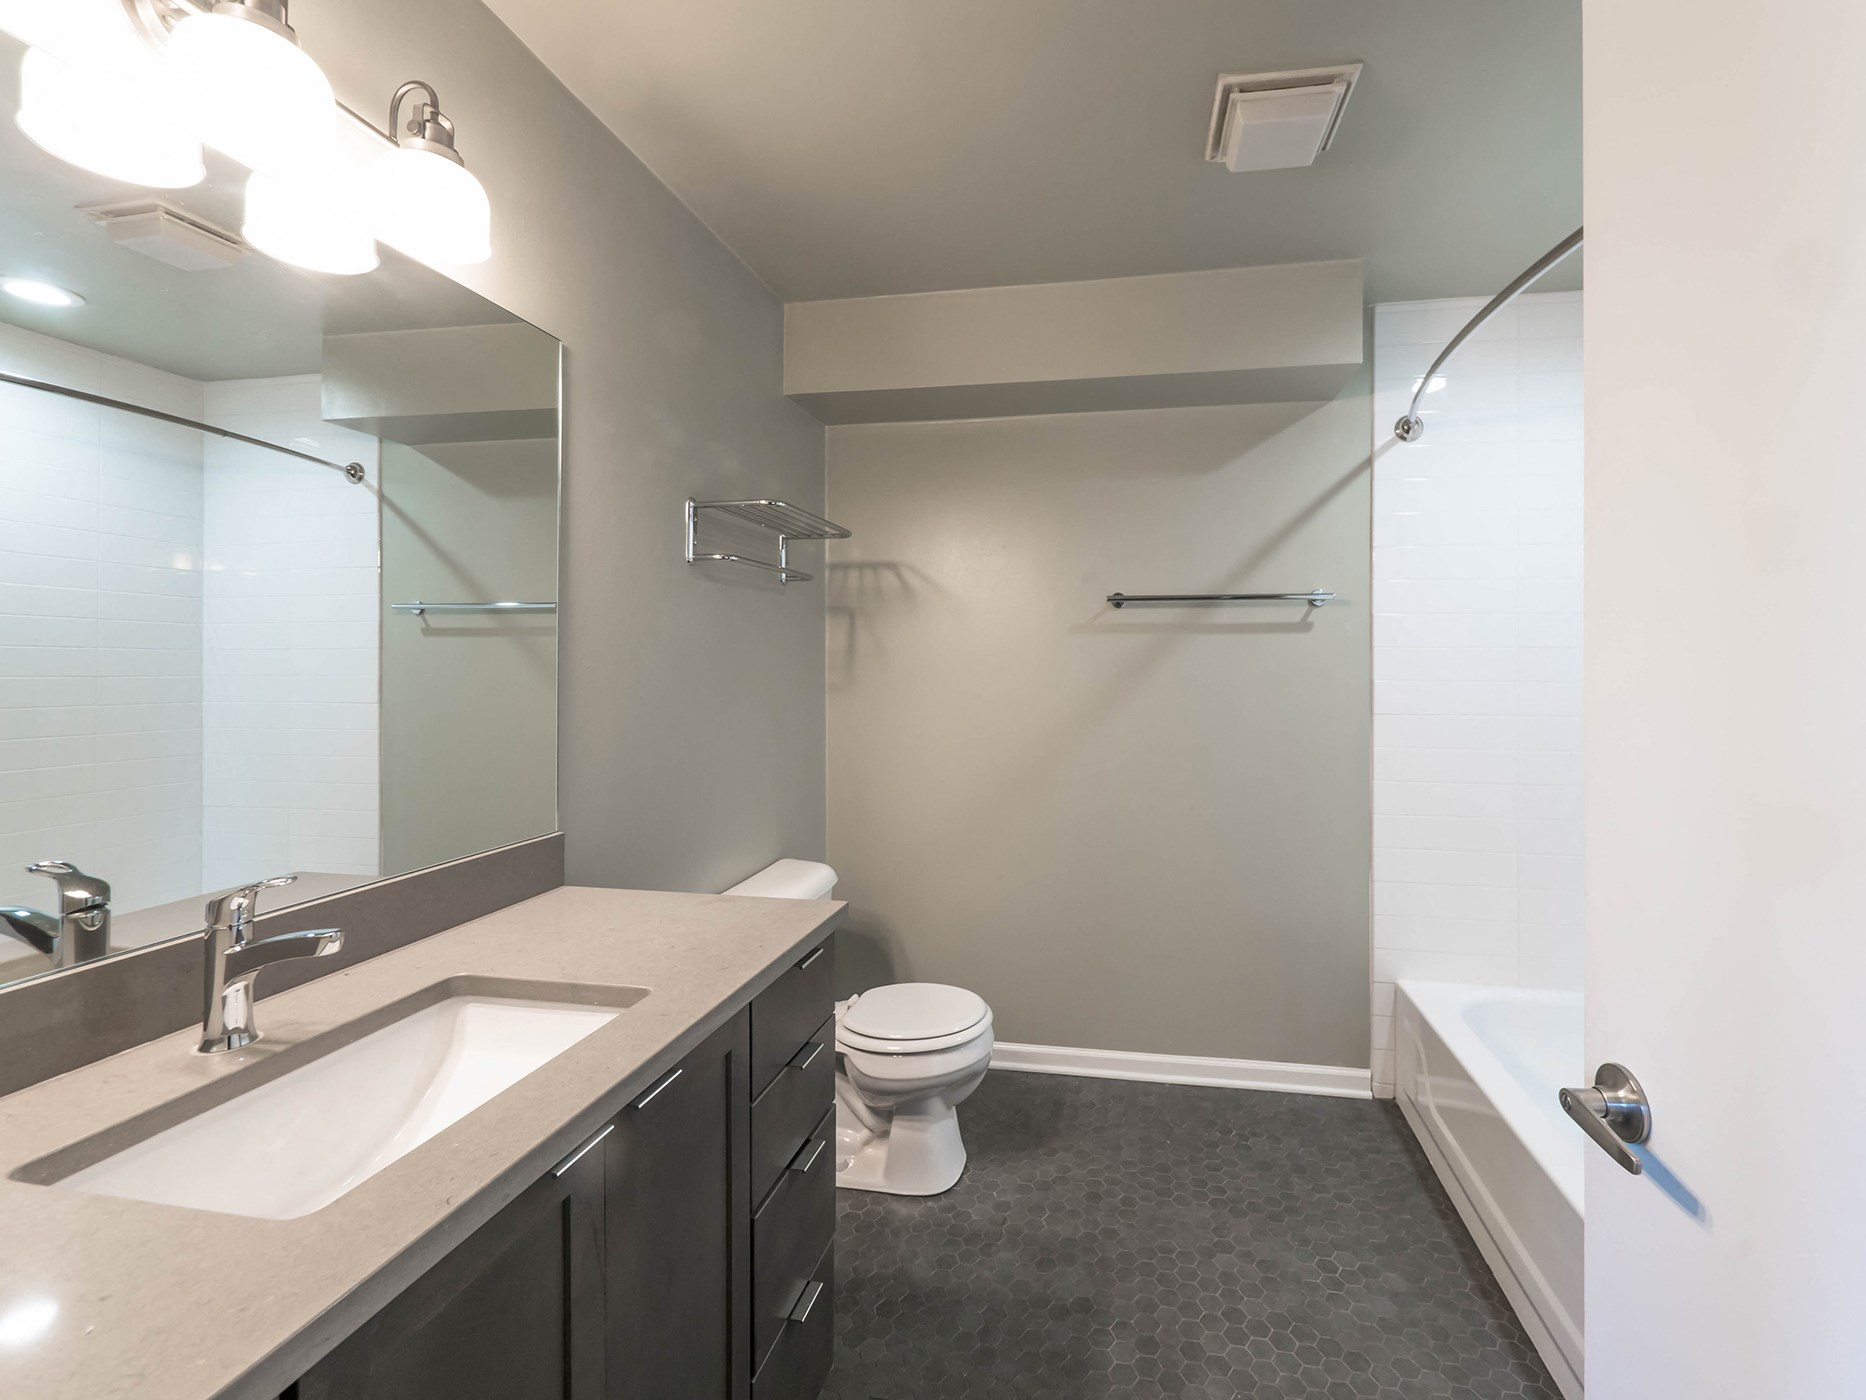 Renovated Bathrooms at 1012 W. Randolph St. Chicago, IL 60607